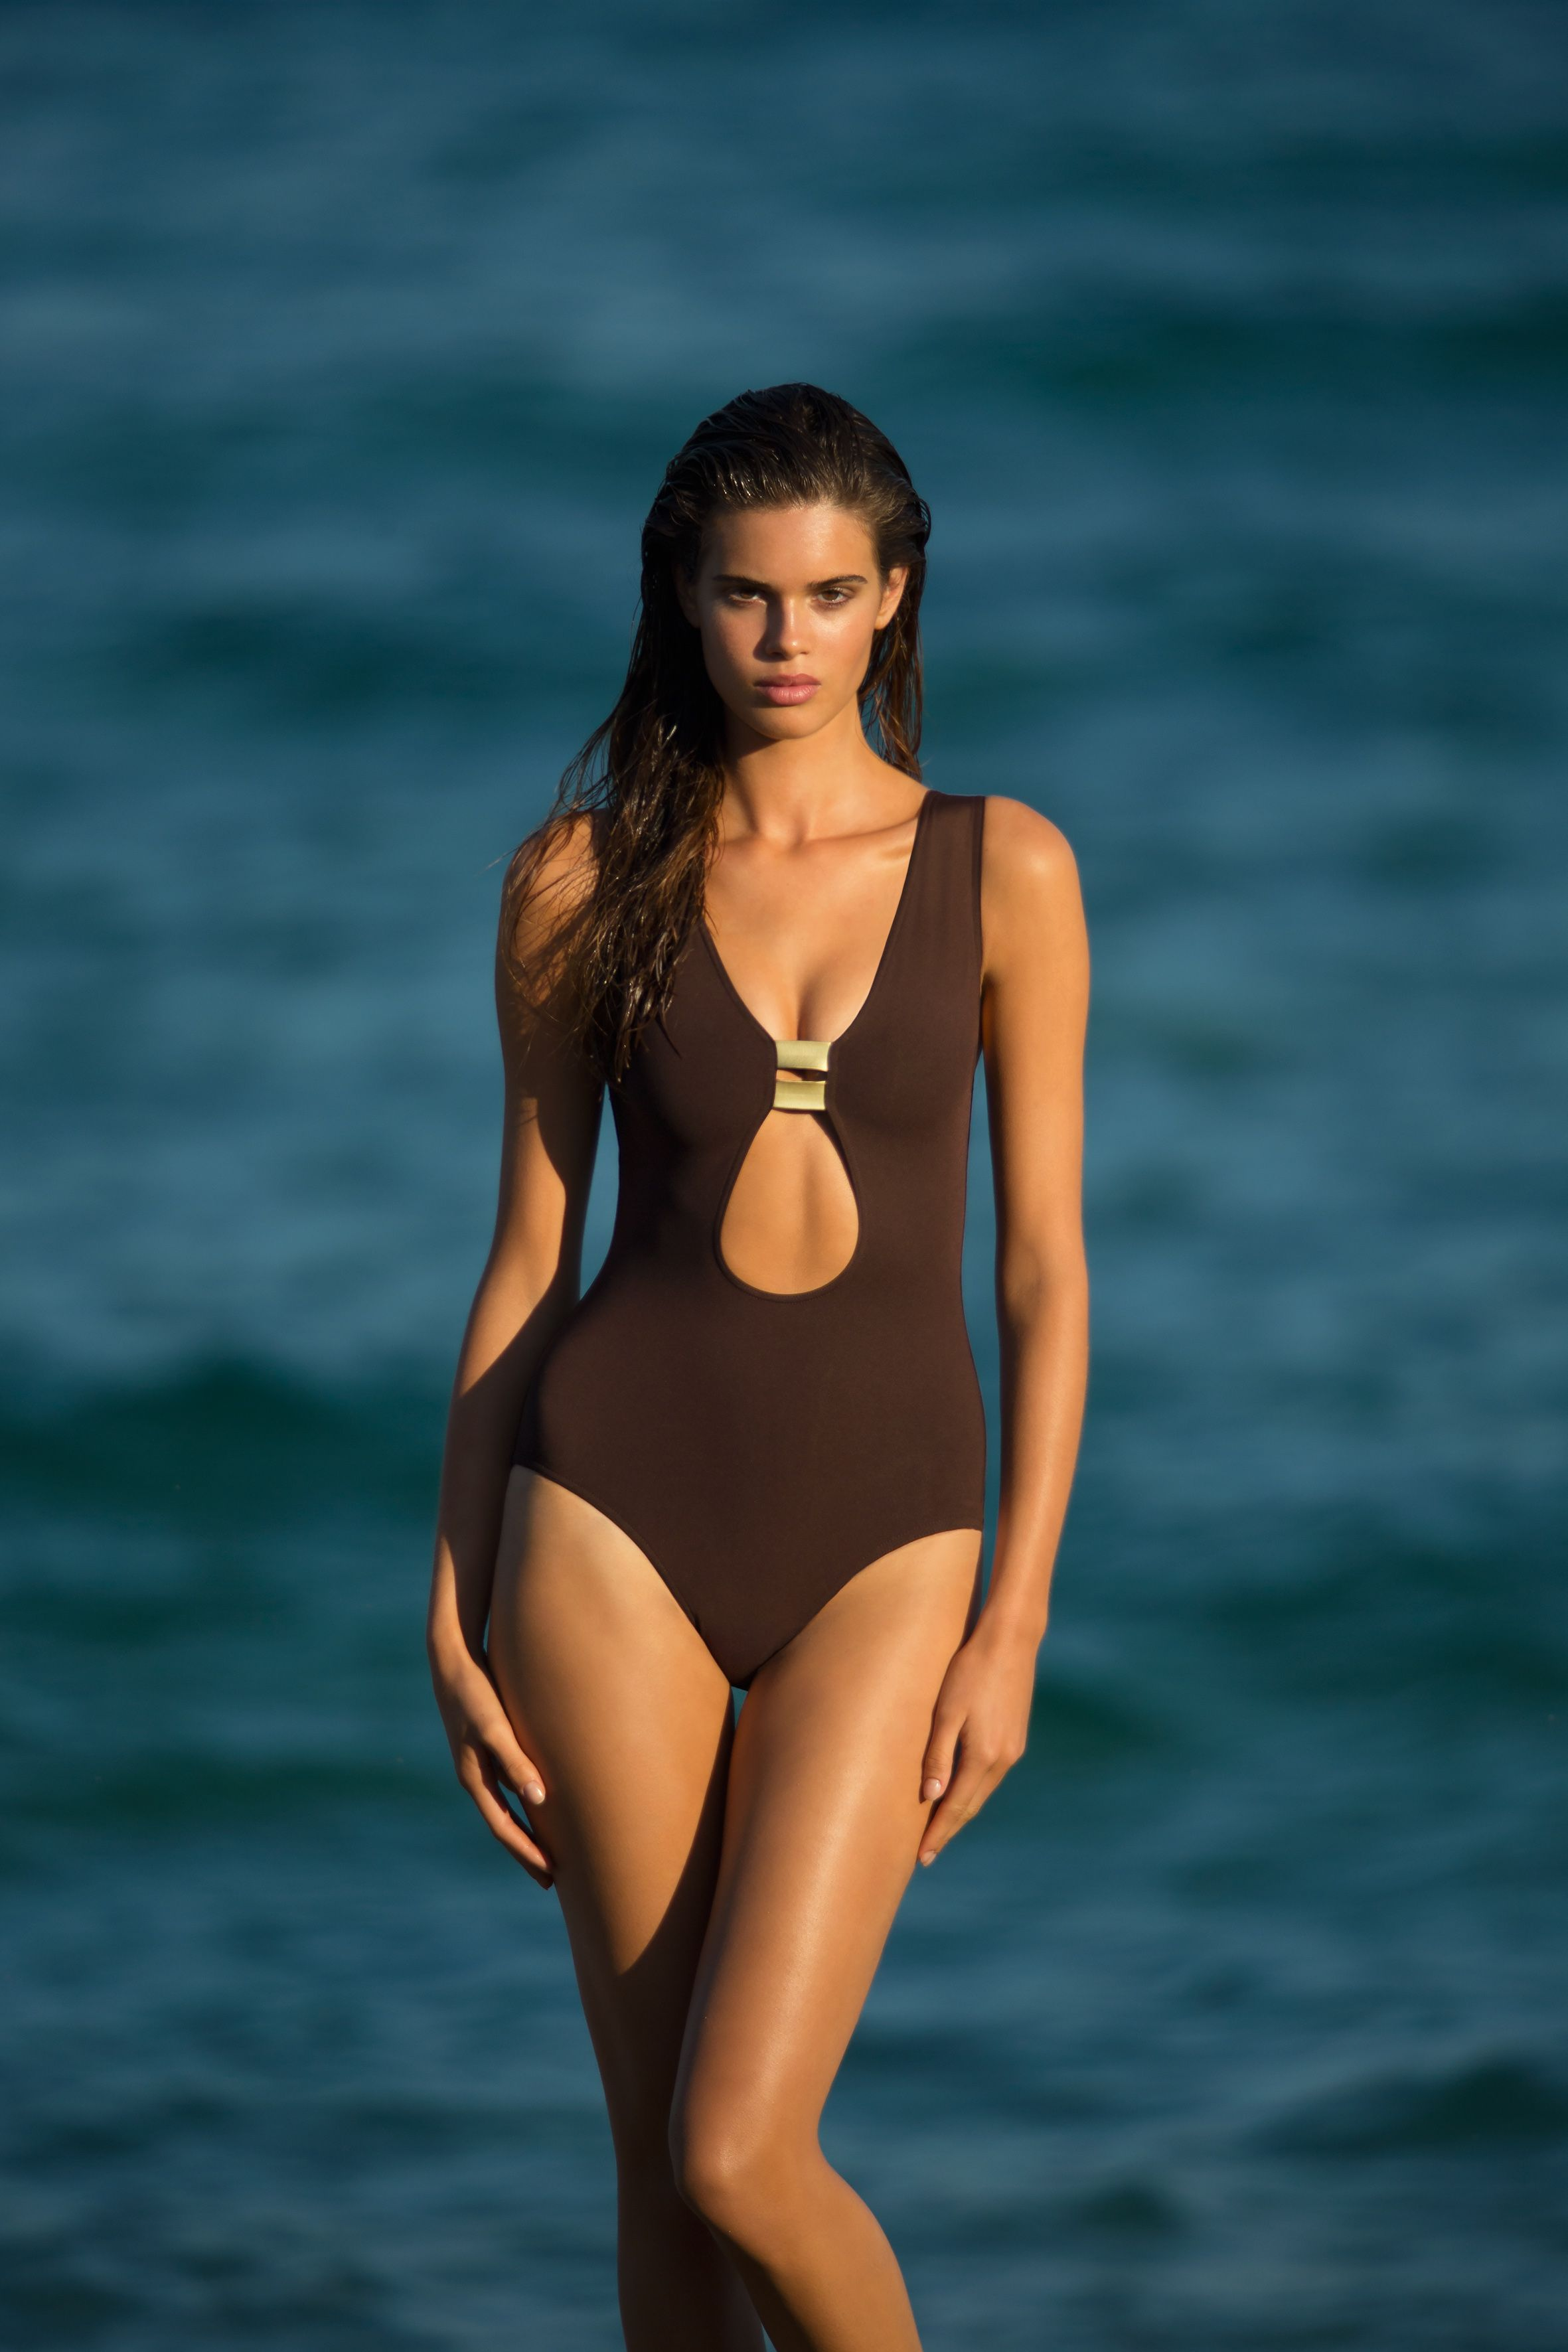 406ca042c44 ERES Swinsuit S/S 2015 Collection. One-piece swimsuit in Peau Douce, deep  tear-drop neckline enhanced with gold-coloured bands, covered back.